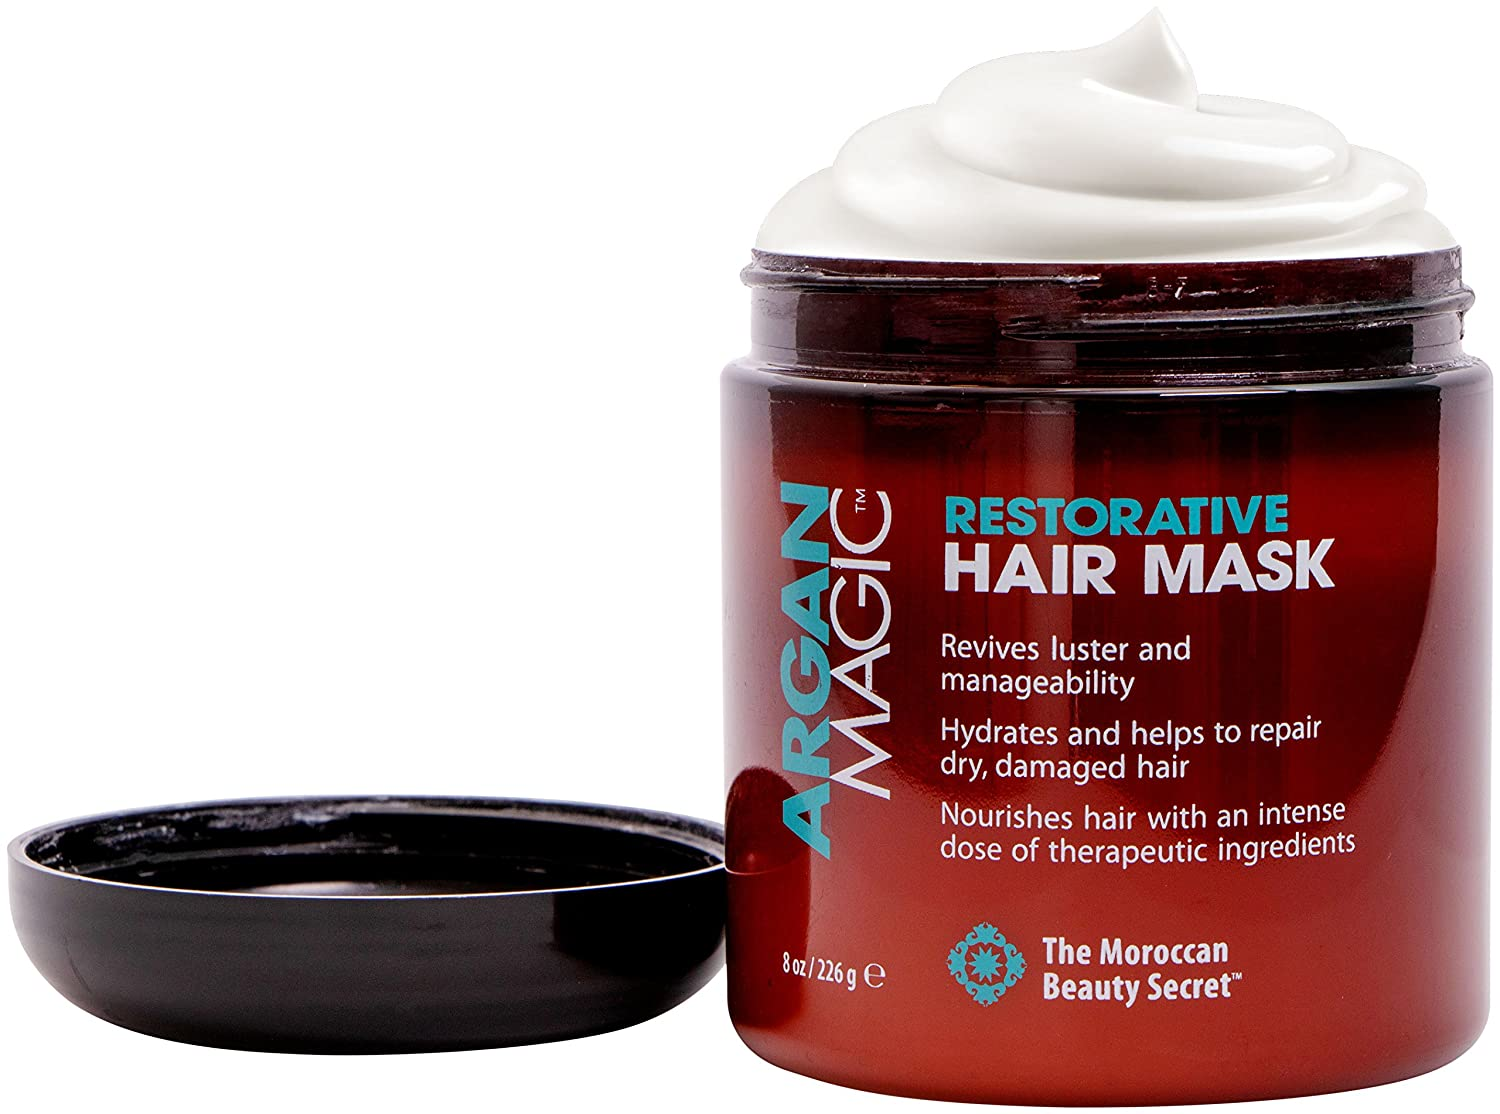 Argan Magic Restorative Hair Mask 8 Oz. Jar Jocott Brands Arg-0789